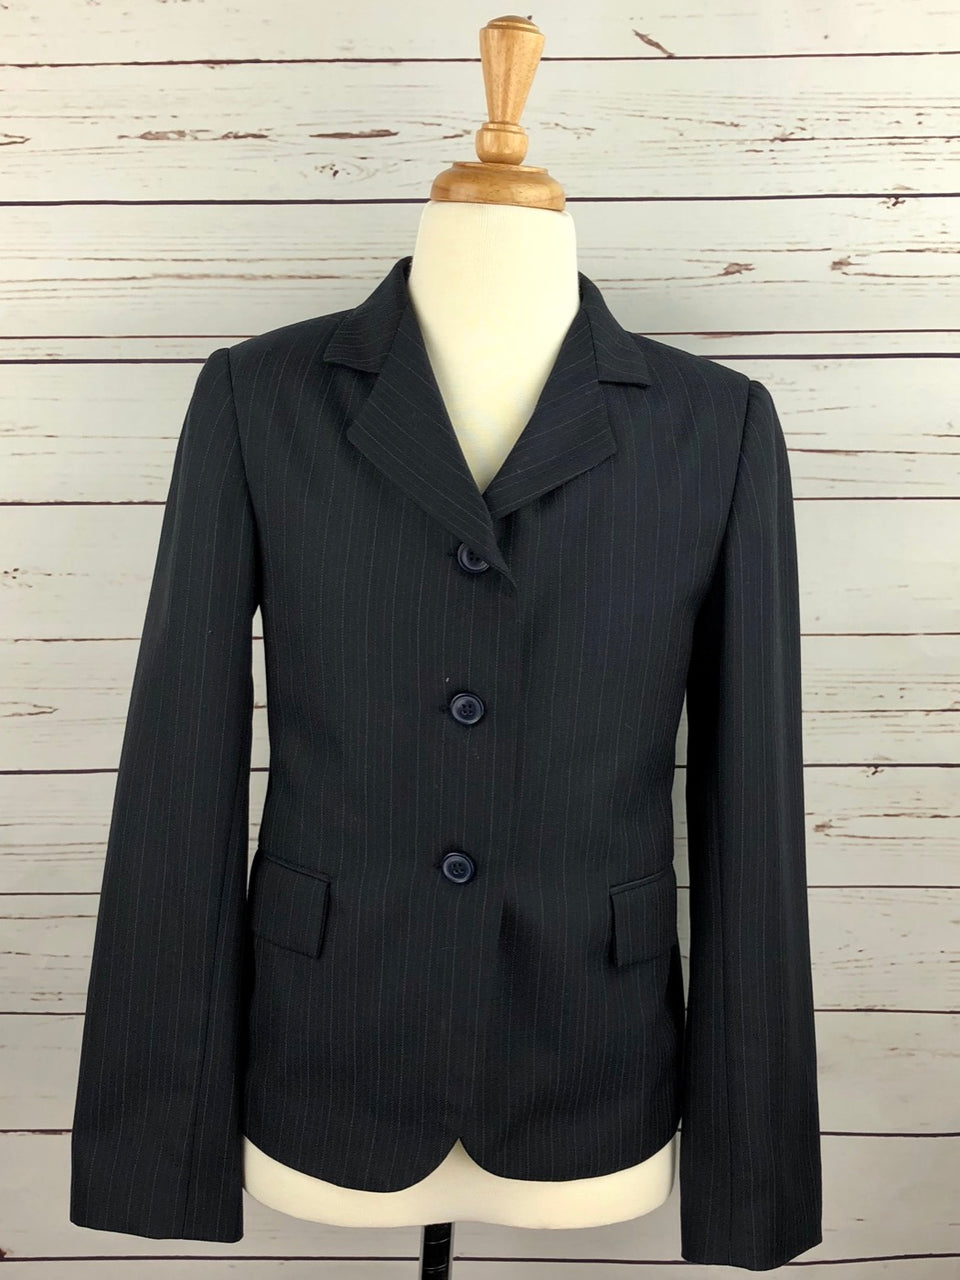 Devon-Aire Concour Elite Hunt Coat in Navy Pinstripe - Children's 12R